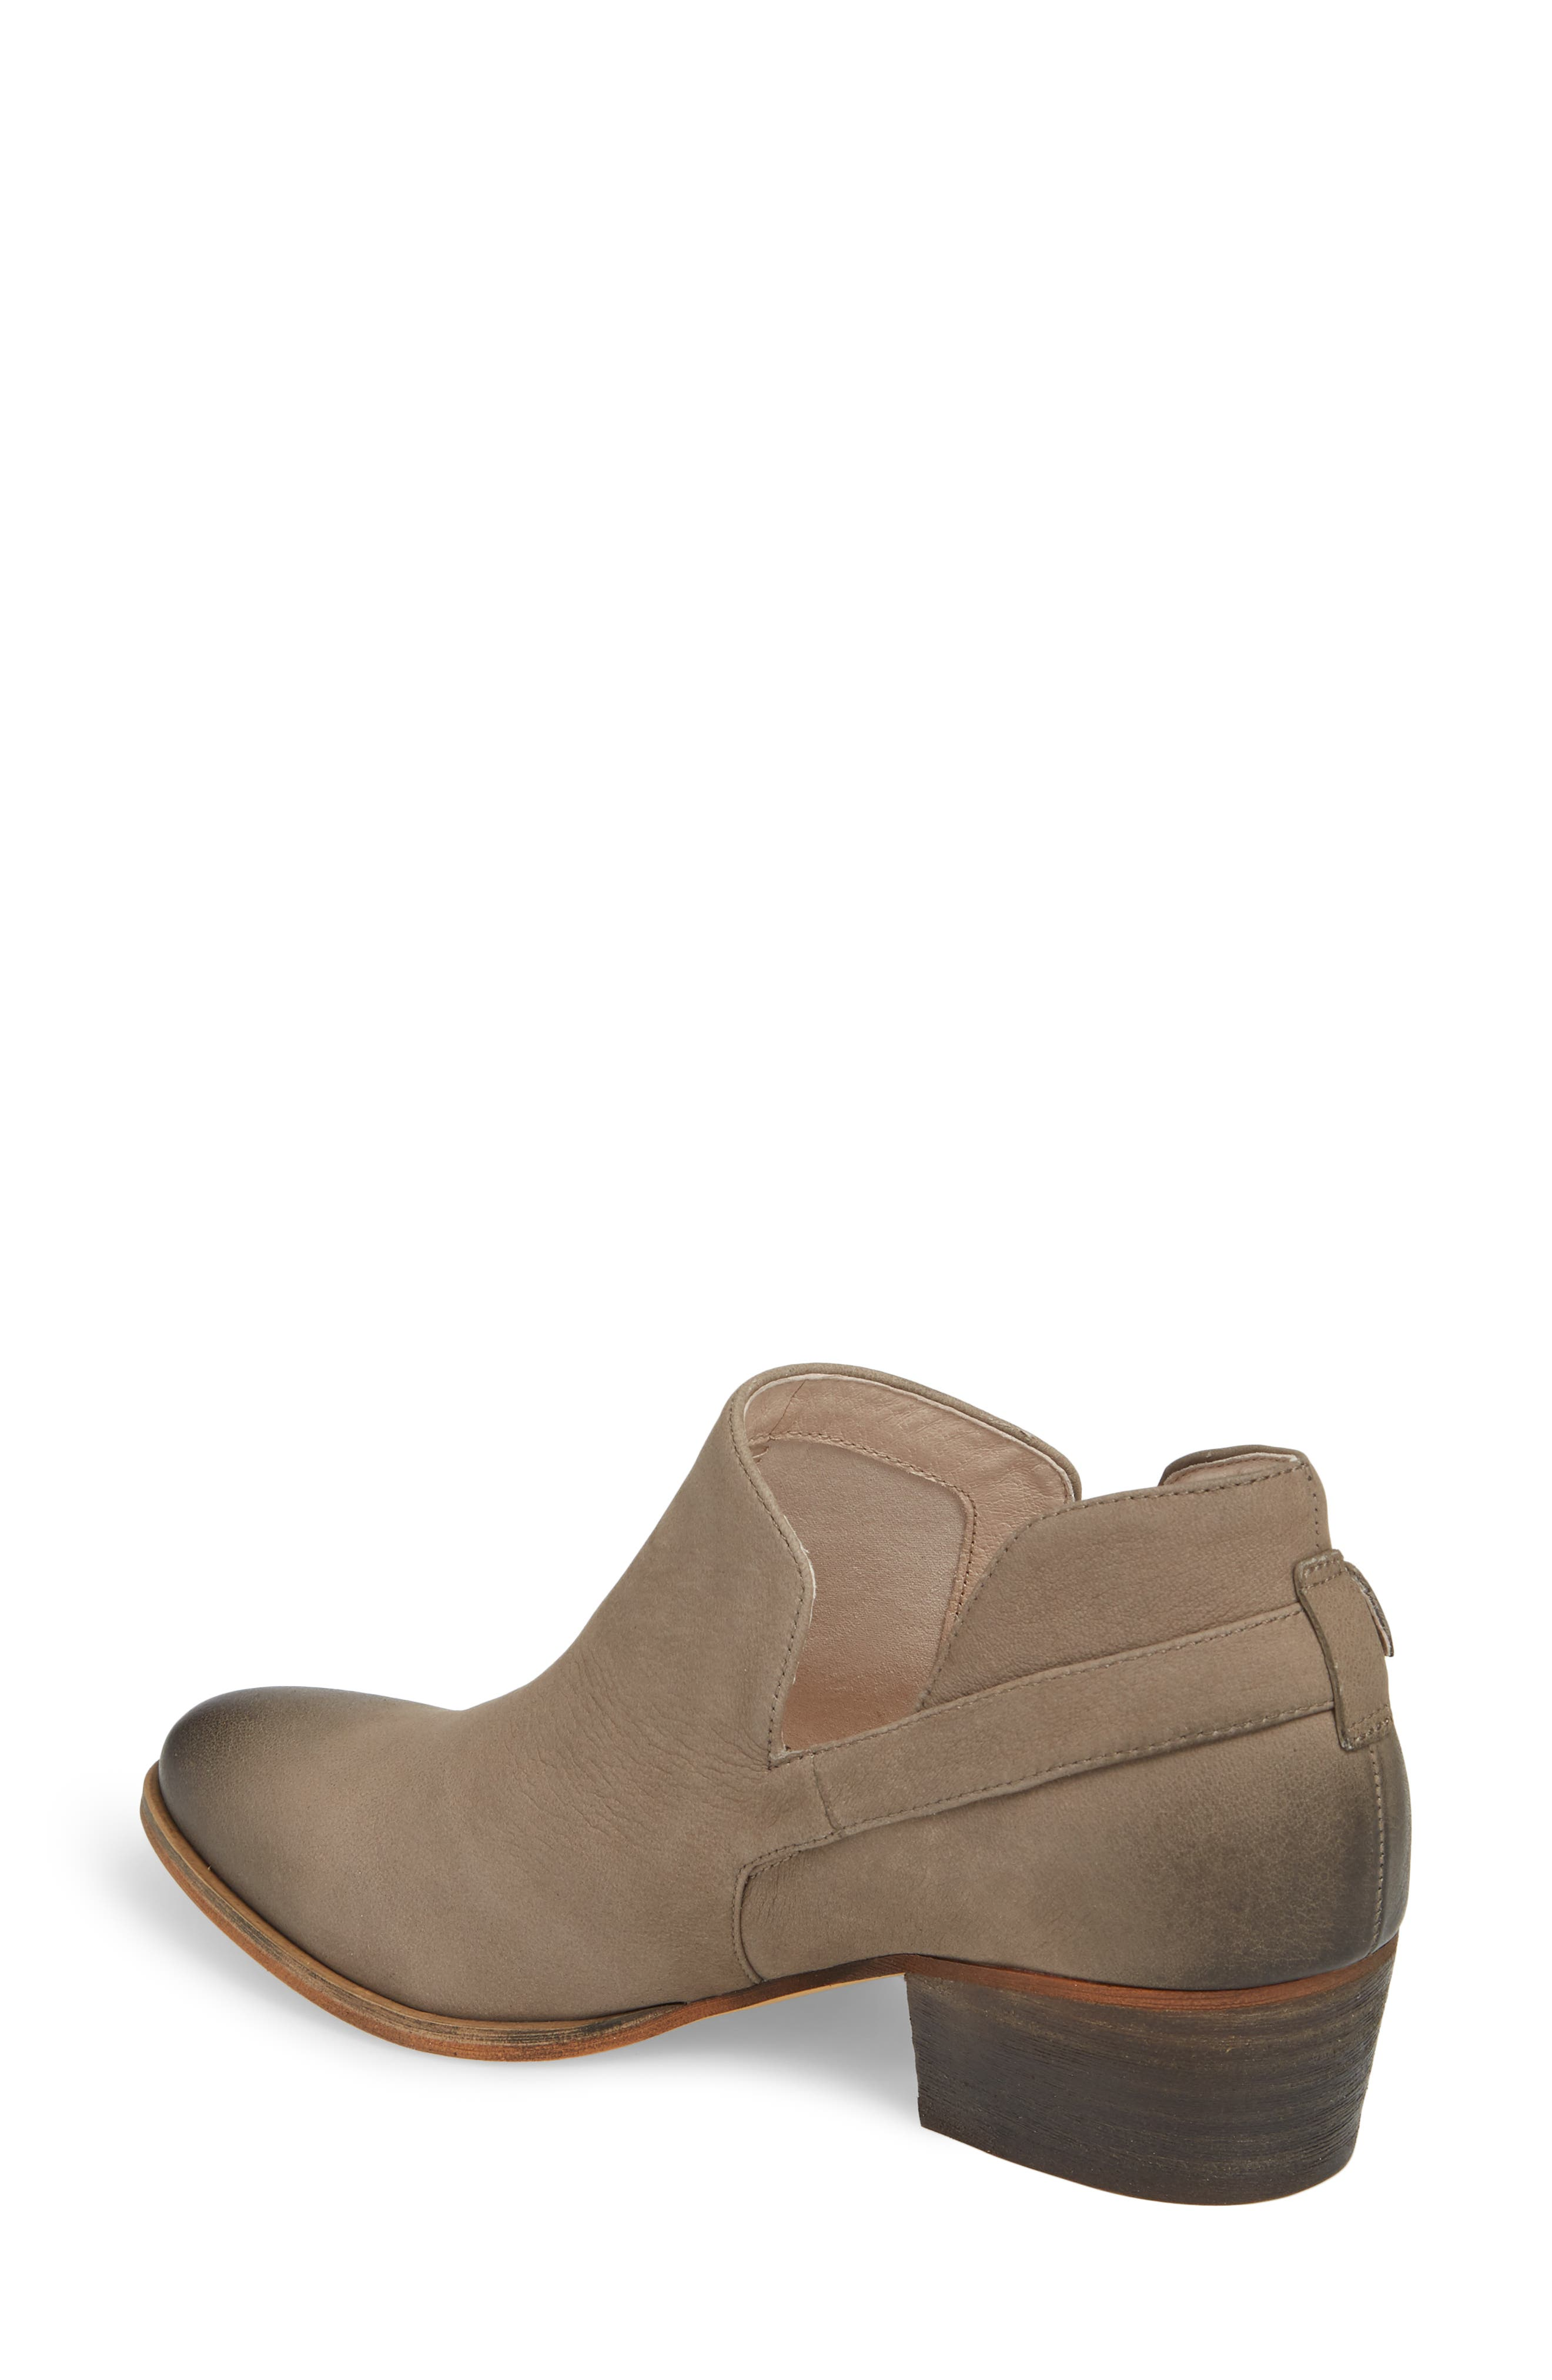 Toby Bootie,                             Alternate thumbnail 2, color,                             Stone Oiled Nubuck